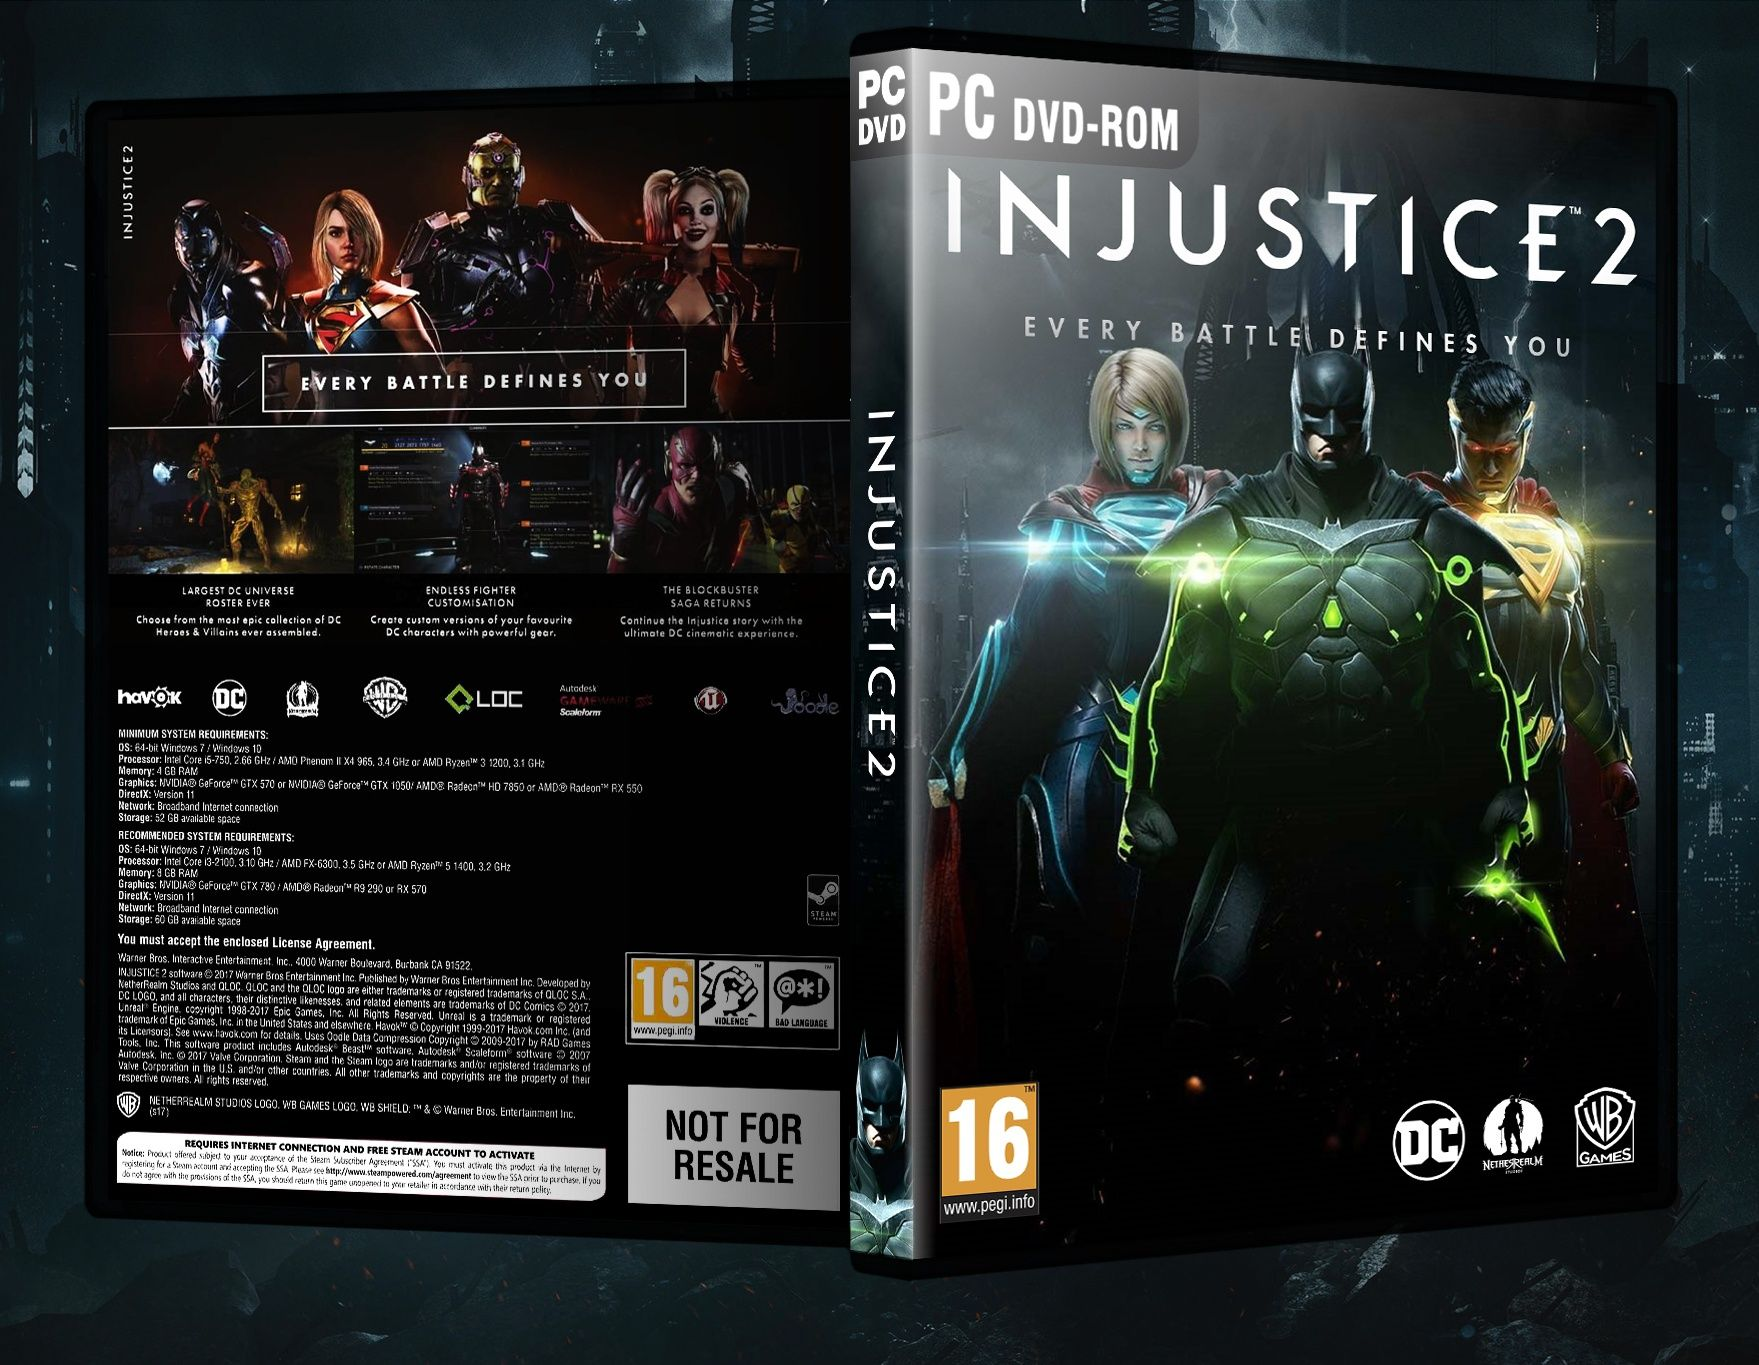 Injustice 2 Box Art Cover Pc Dvd Covers Pinterest Ps4 Region 3